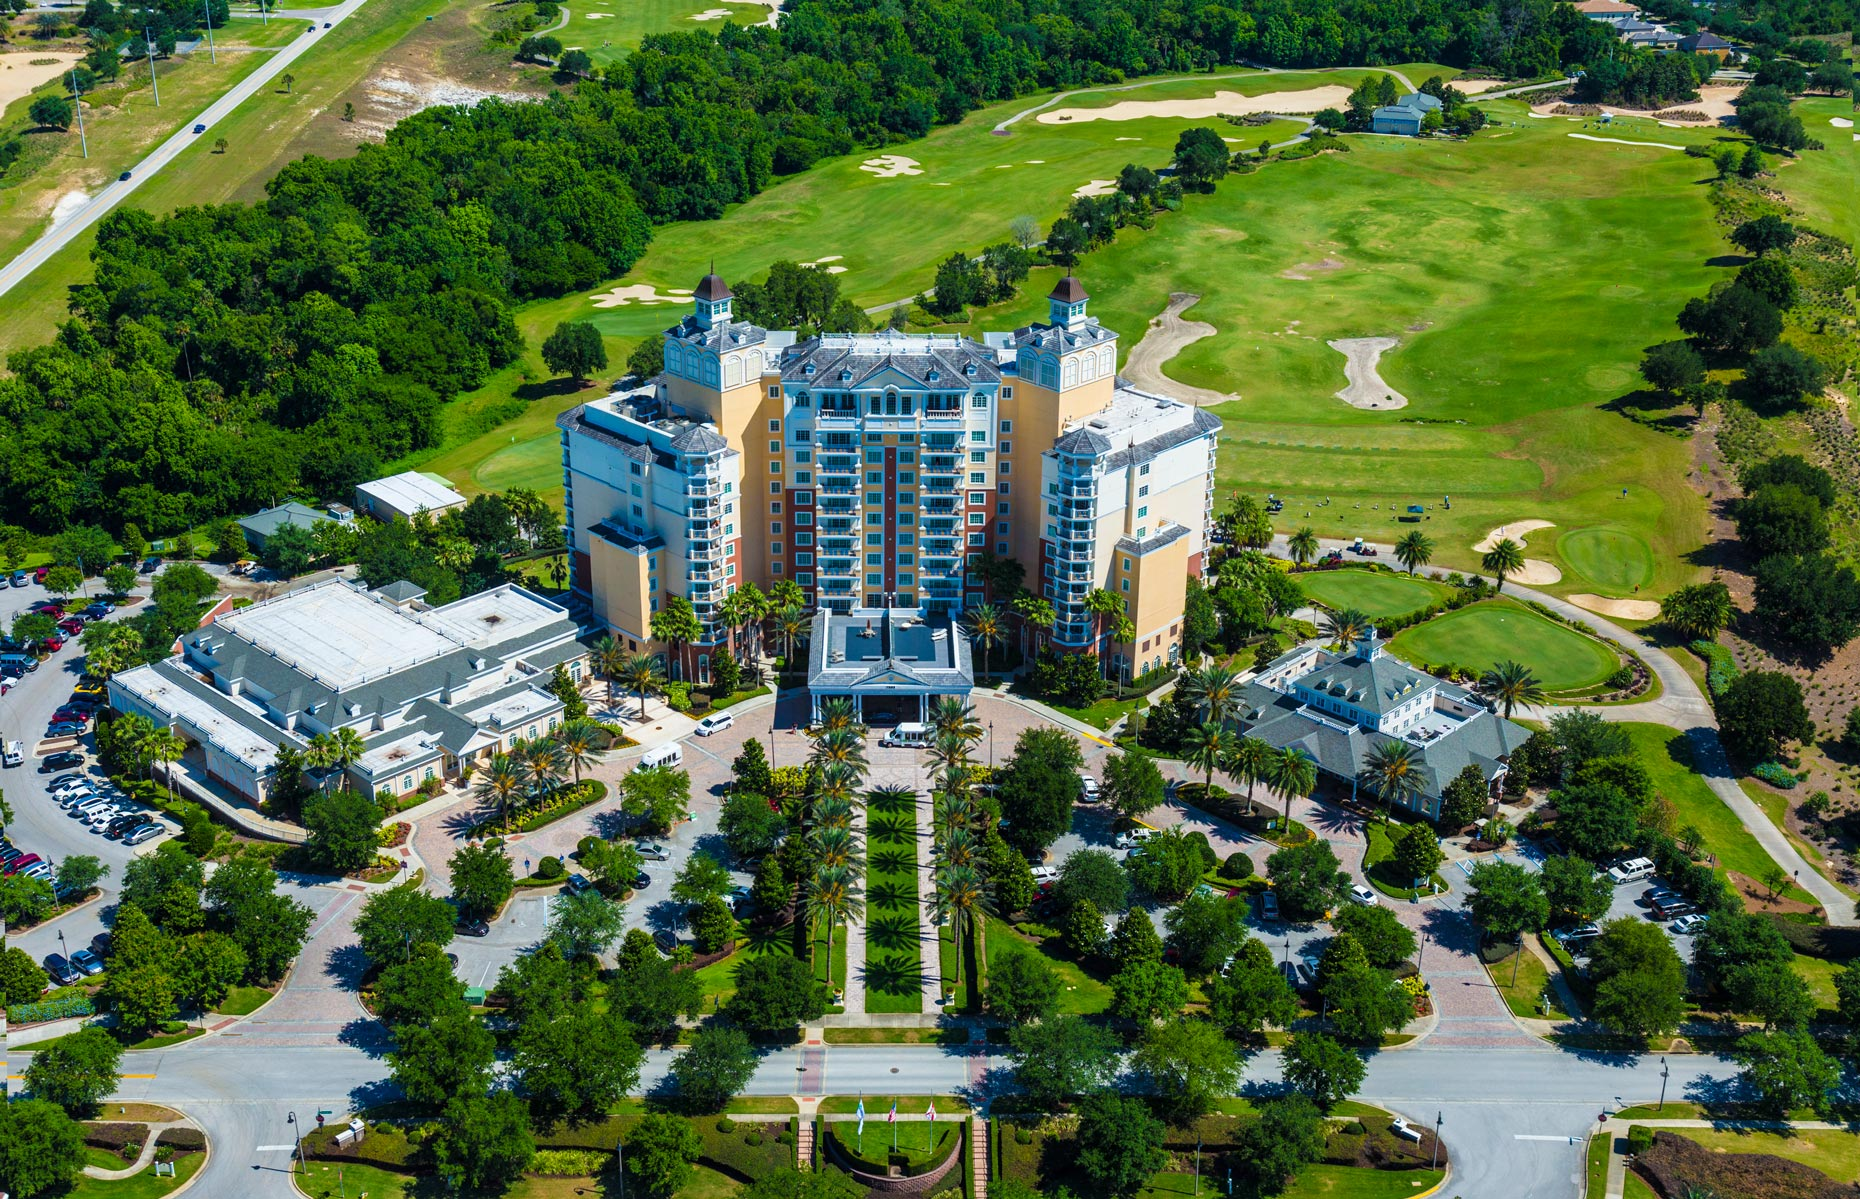 Aerial Photography | Omni Hotel Champions Gate Orlando Aerial View 1